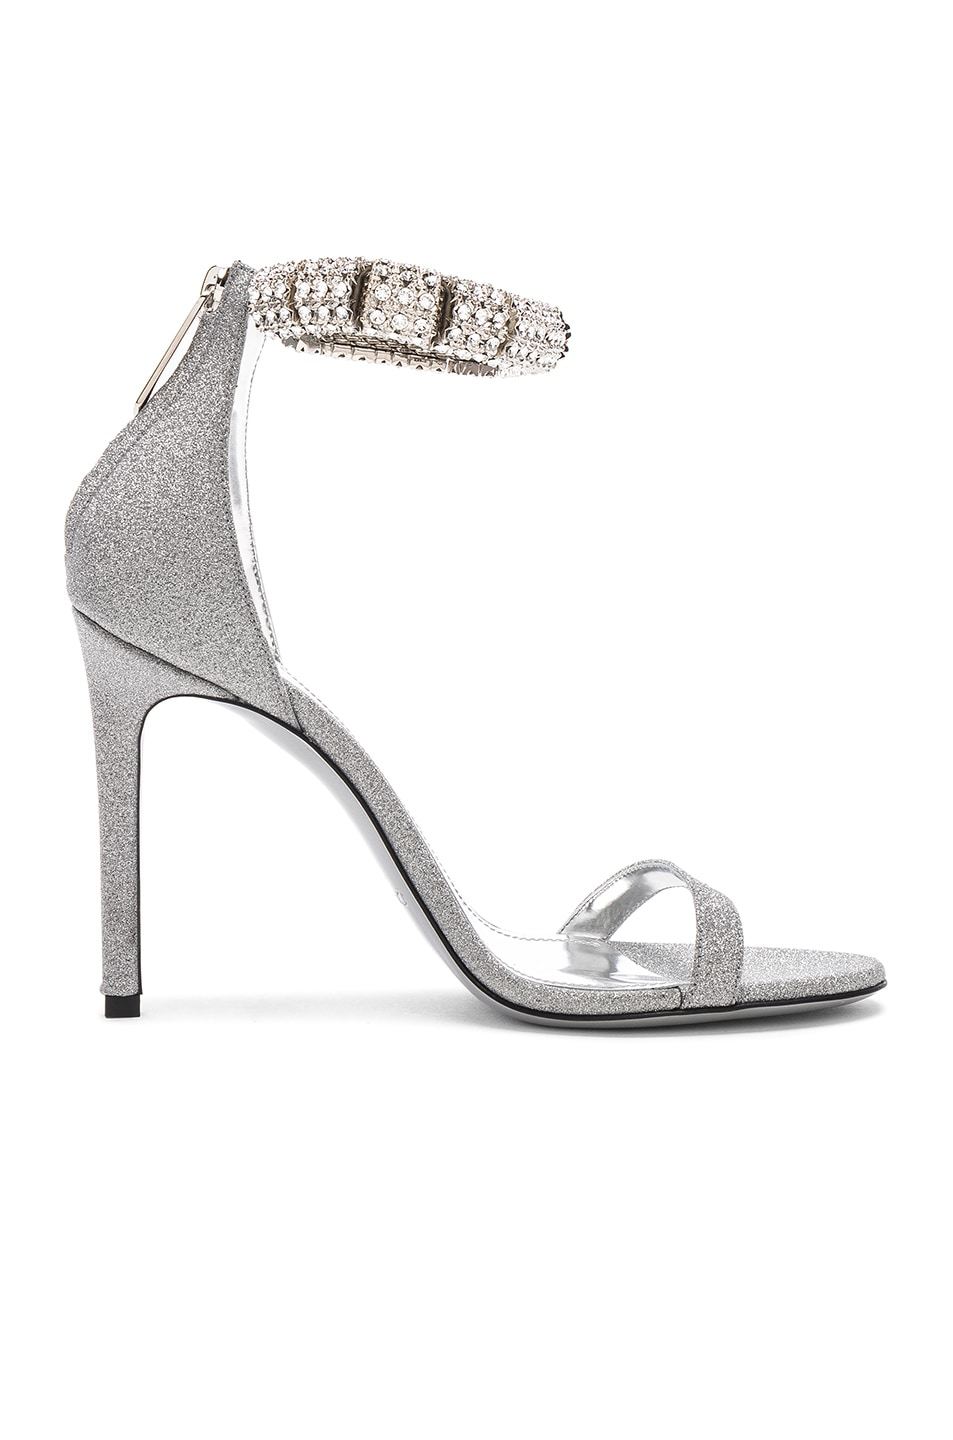 Image 6 of CALVIN KLEIN 205W39NYC Camelle Diamond & Swarovski Embellished Sandals in Silver